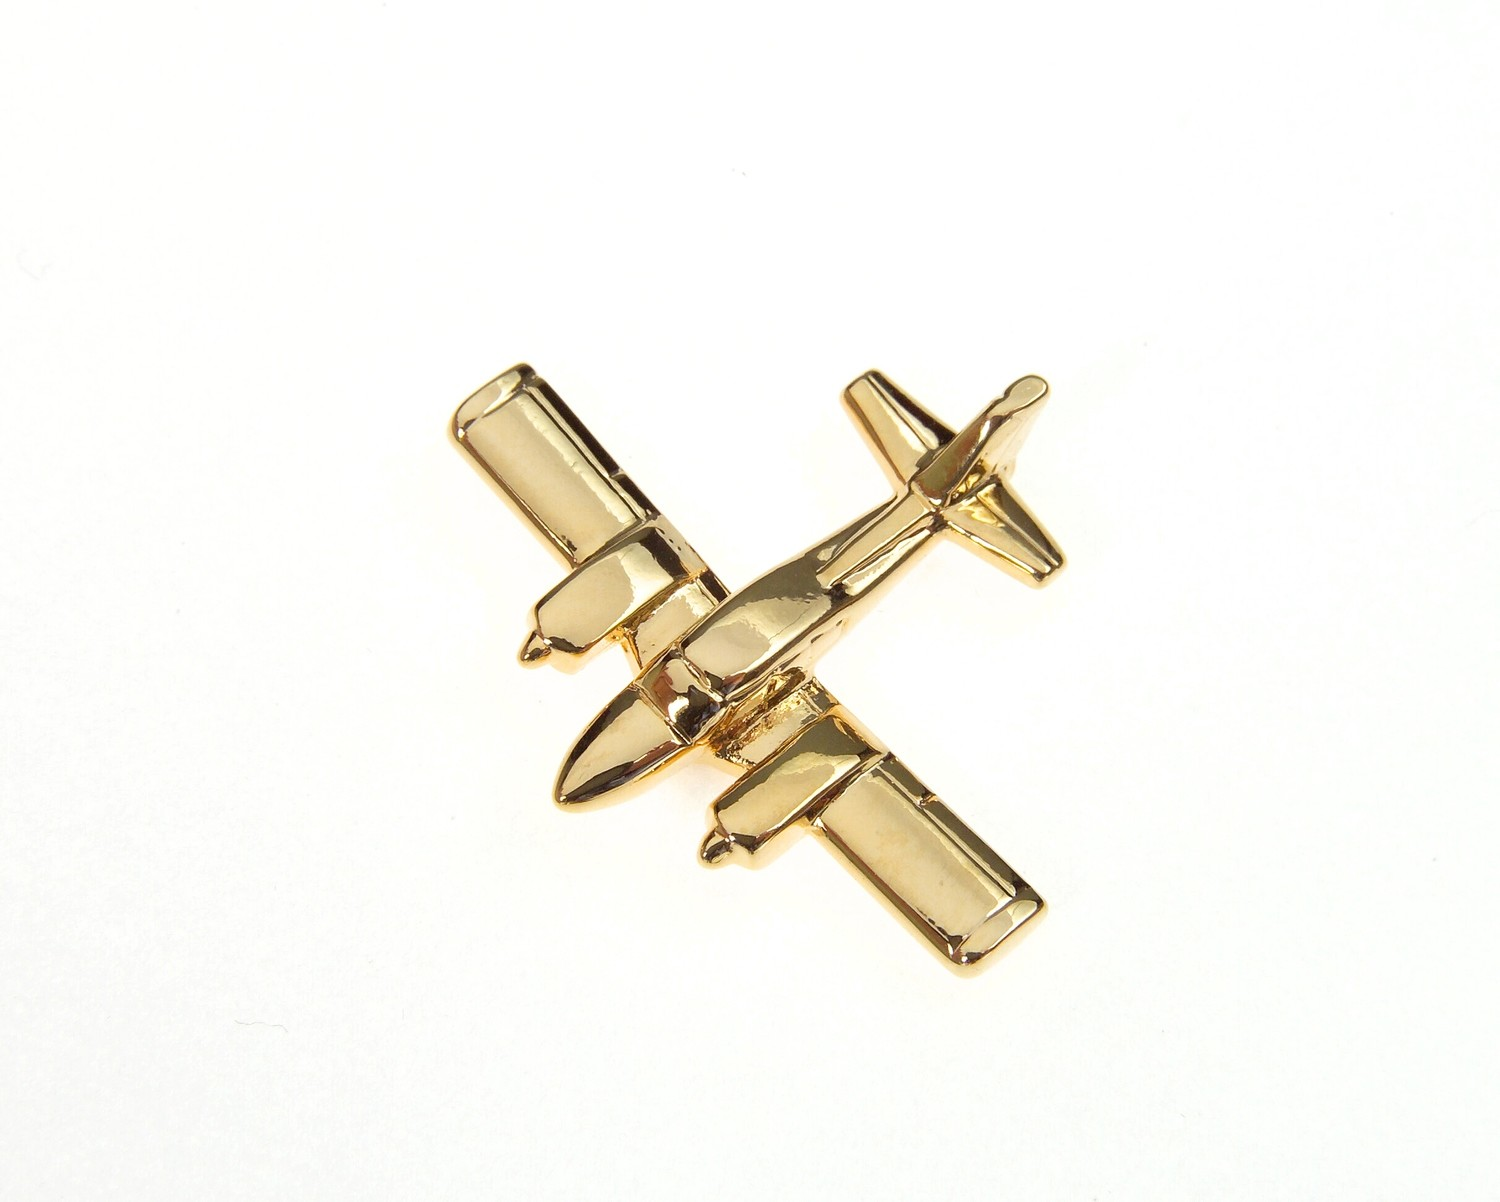 Grumman Cougar Gold Plated Tie / Lapel Pin